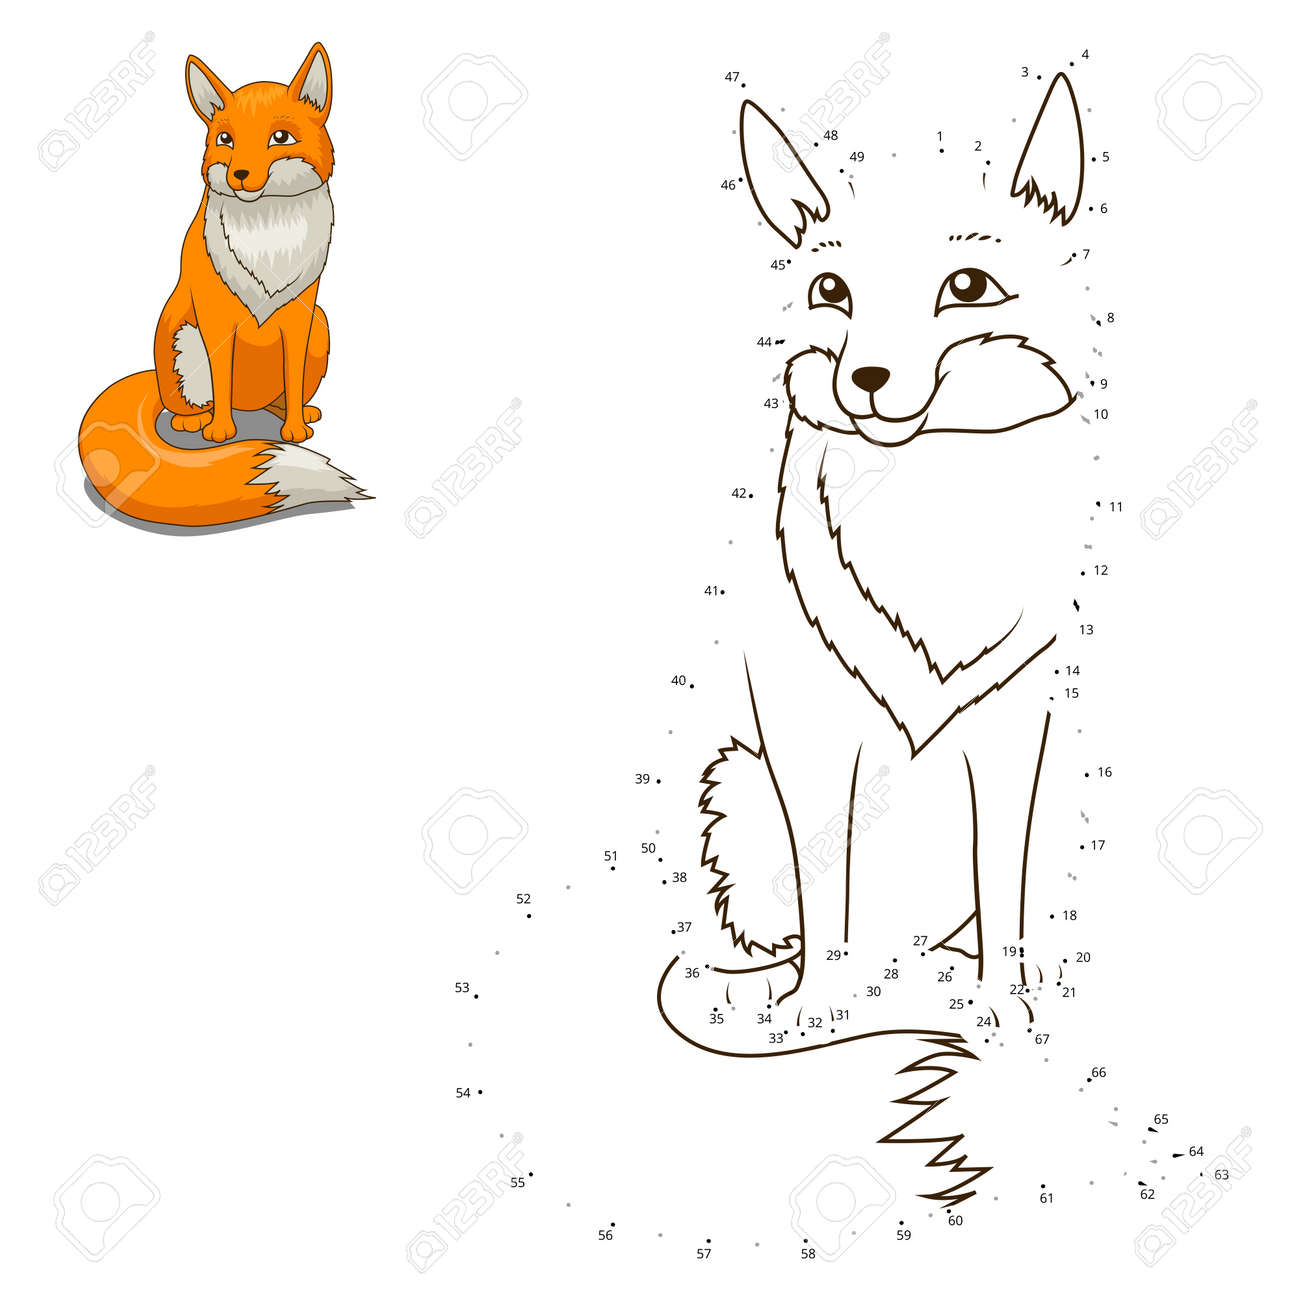 connect the dots to draw the animal educational game for children